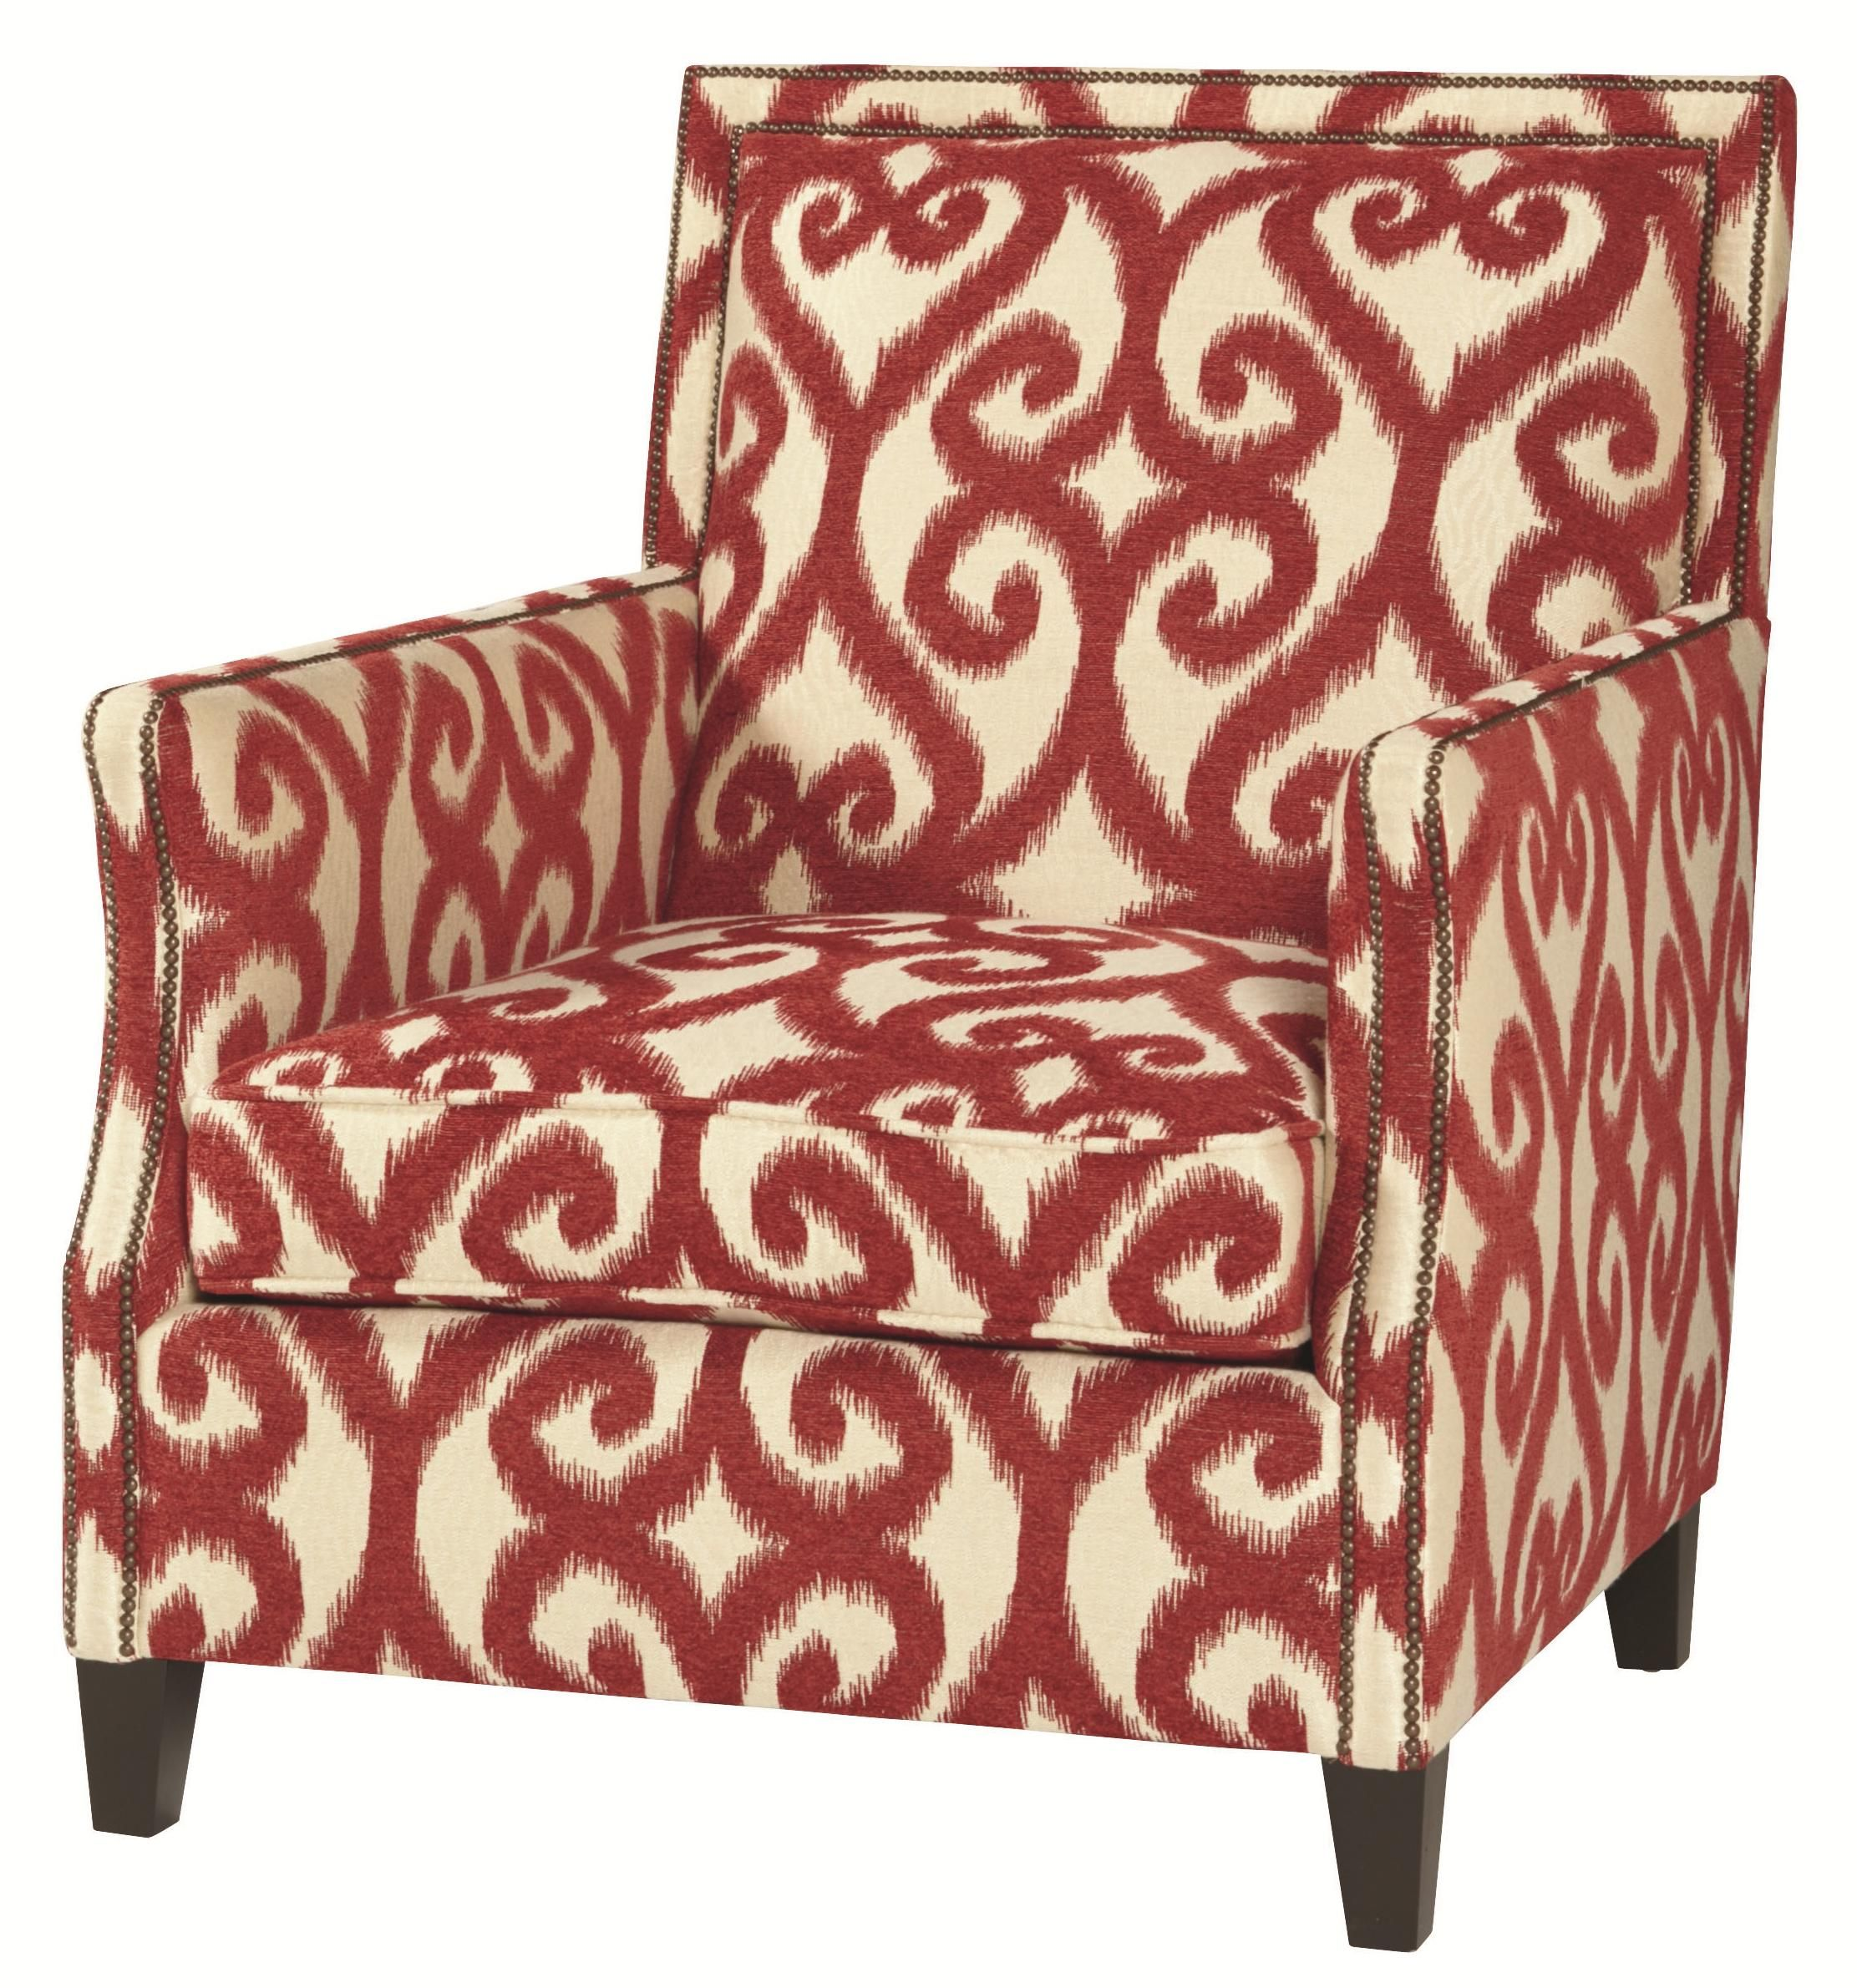 Upholstered Accents Scarsdale Chair by Bernhardt at NB Liebman